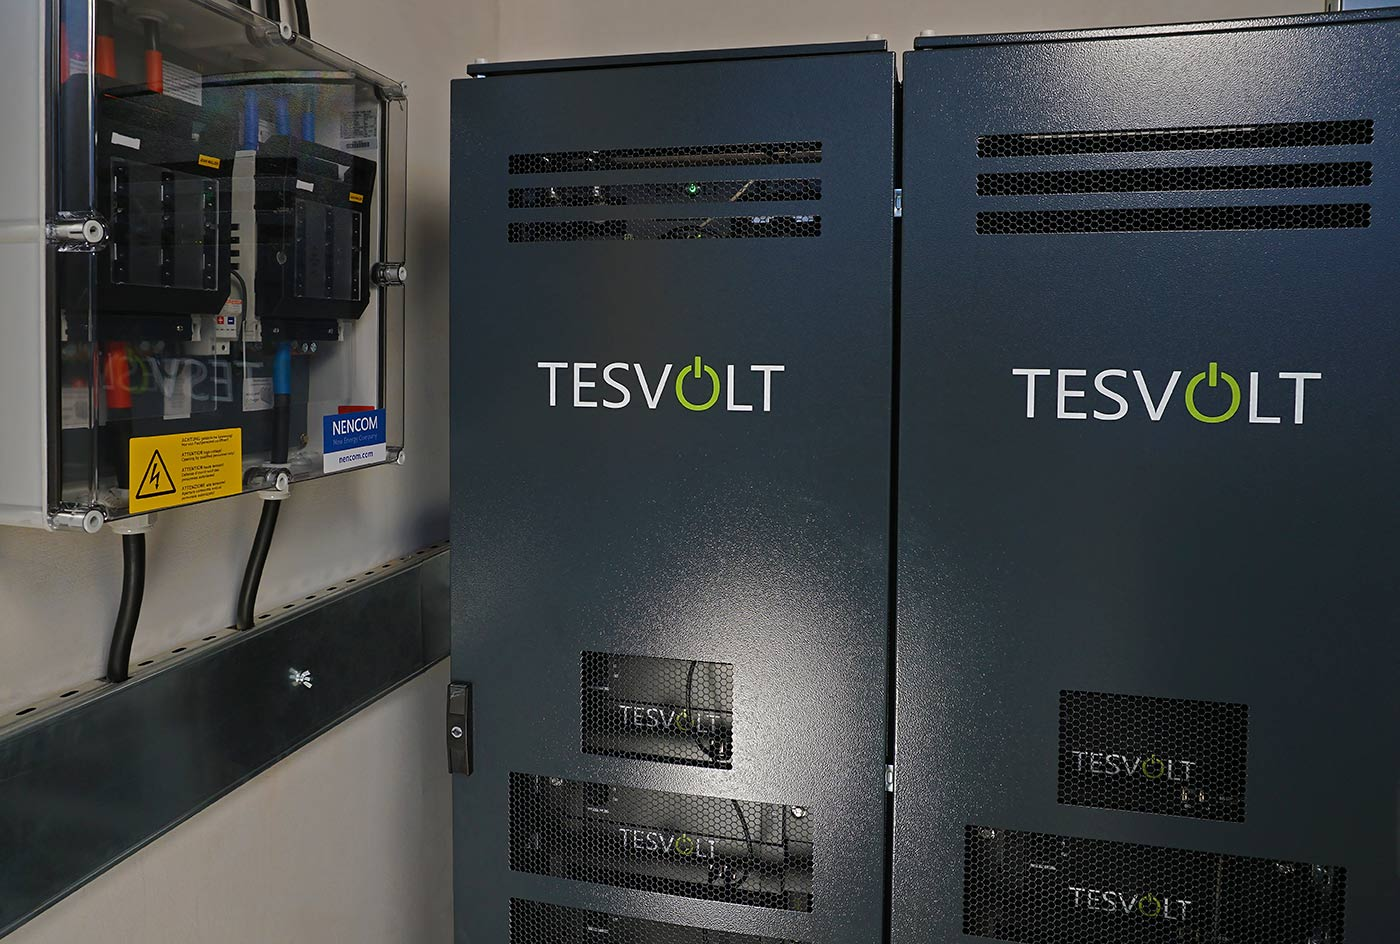 Two TS40 cabinet for storage system TESVOLT